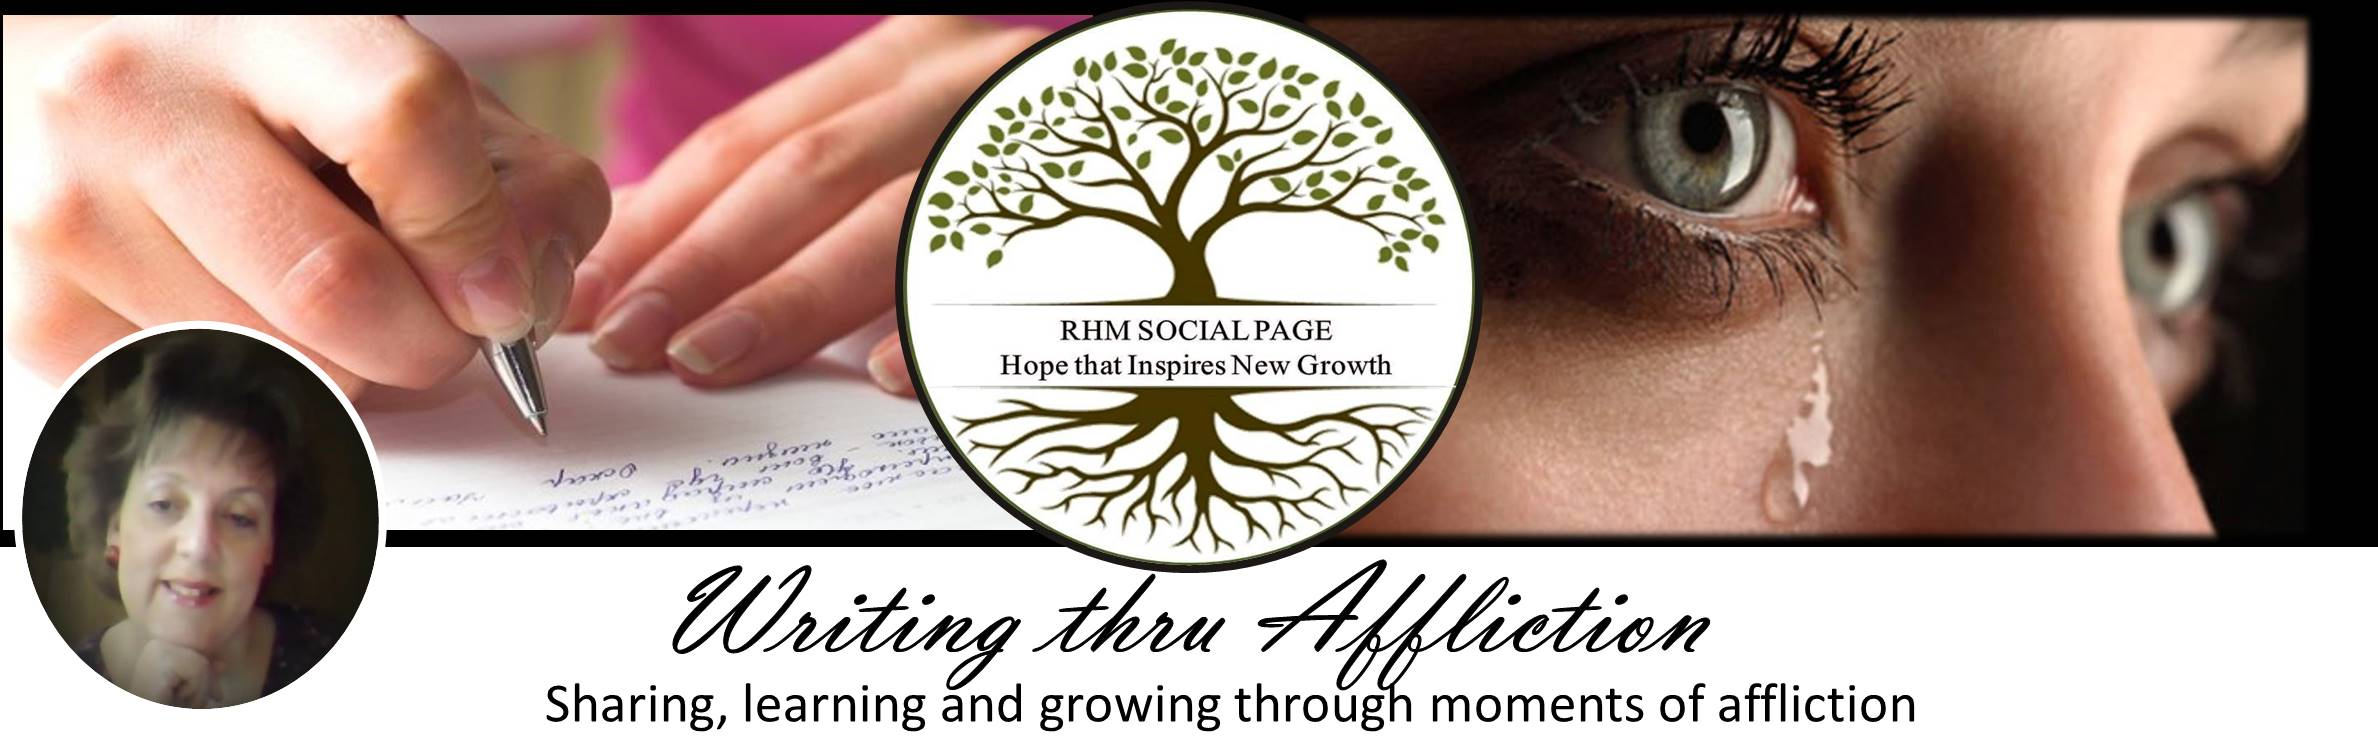 Risen Hope Ministries Social Blog Page | Writing thru Affliction with Diane K Hiltz Chamberlain